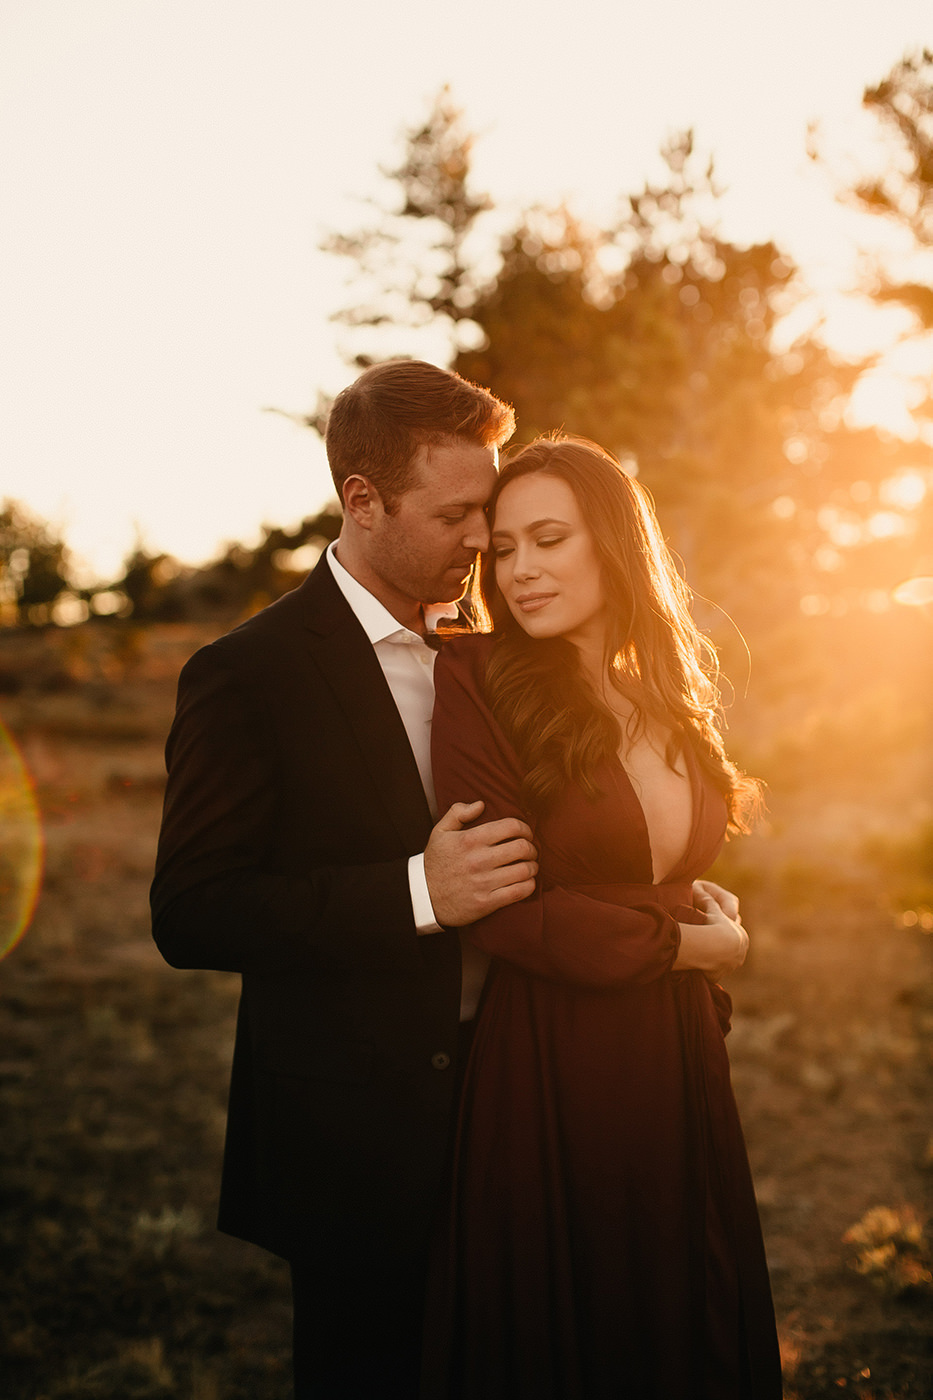 Liz Osban Photography Cheyenne Wyoming Ft Collins Colorado Estes Park Rocky Mountain National Park Photographer Grand Teton Jacksonhole Iceland Destination Elopement Adventure Wedding Elope52.jpg